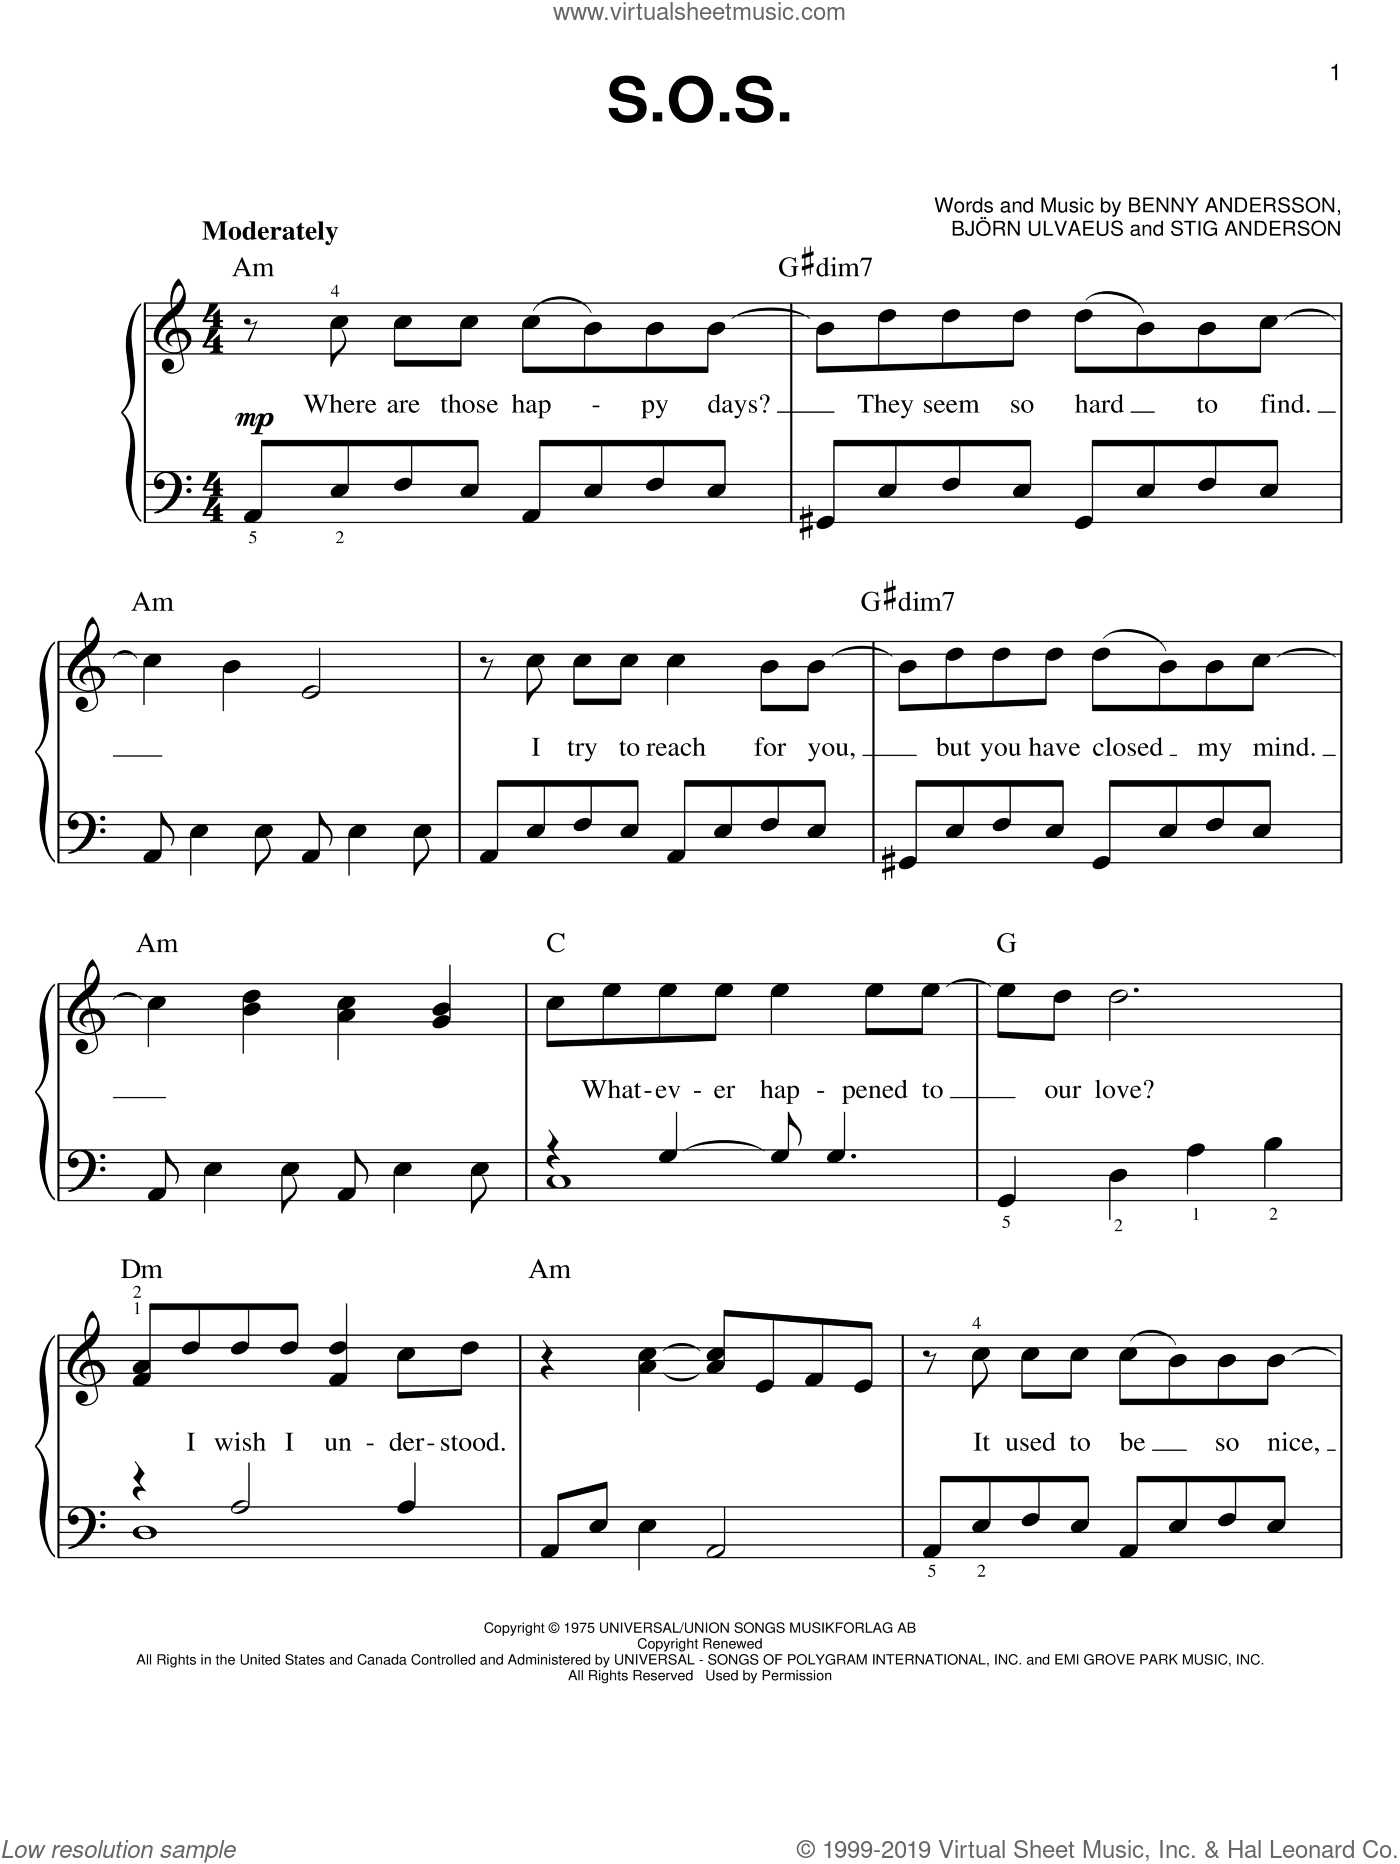 S.O.S. sheet music for piano solo (chords) by Stig Anderson